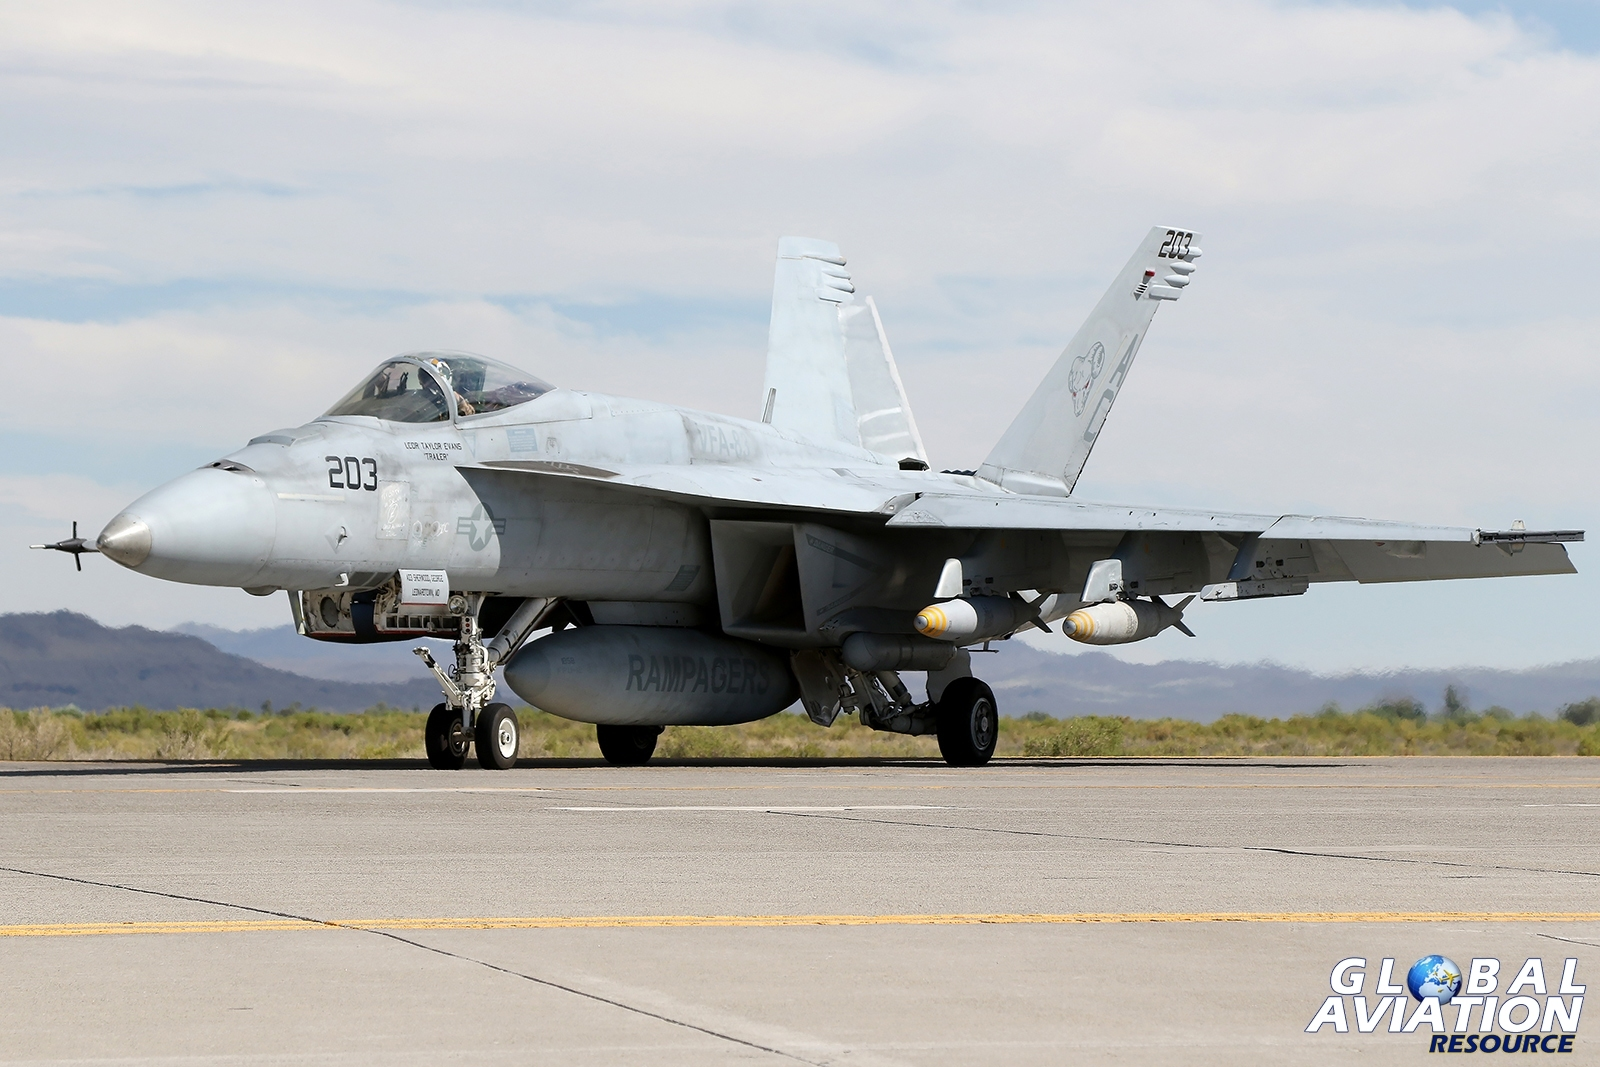 F/A-18E Super Hornet from VFA-83 Rampagers before departure. The aircraft carries four live Mk83 1000lb bombs © Paul Dunn - Global Aviation Resource